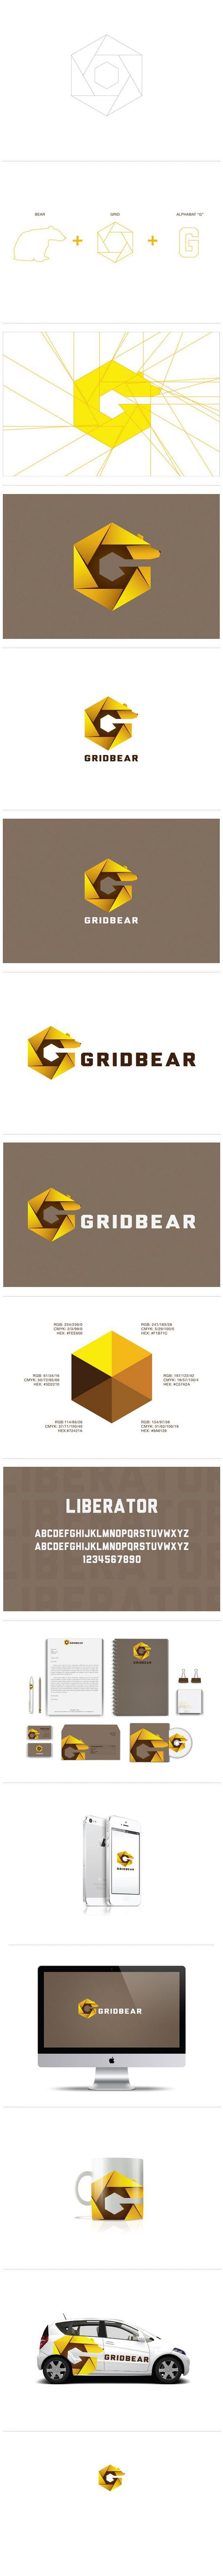 Grid Bear - Corporate and Brand Identity Development